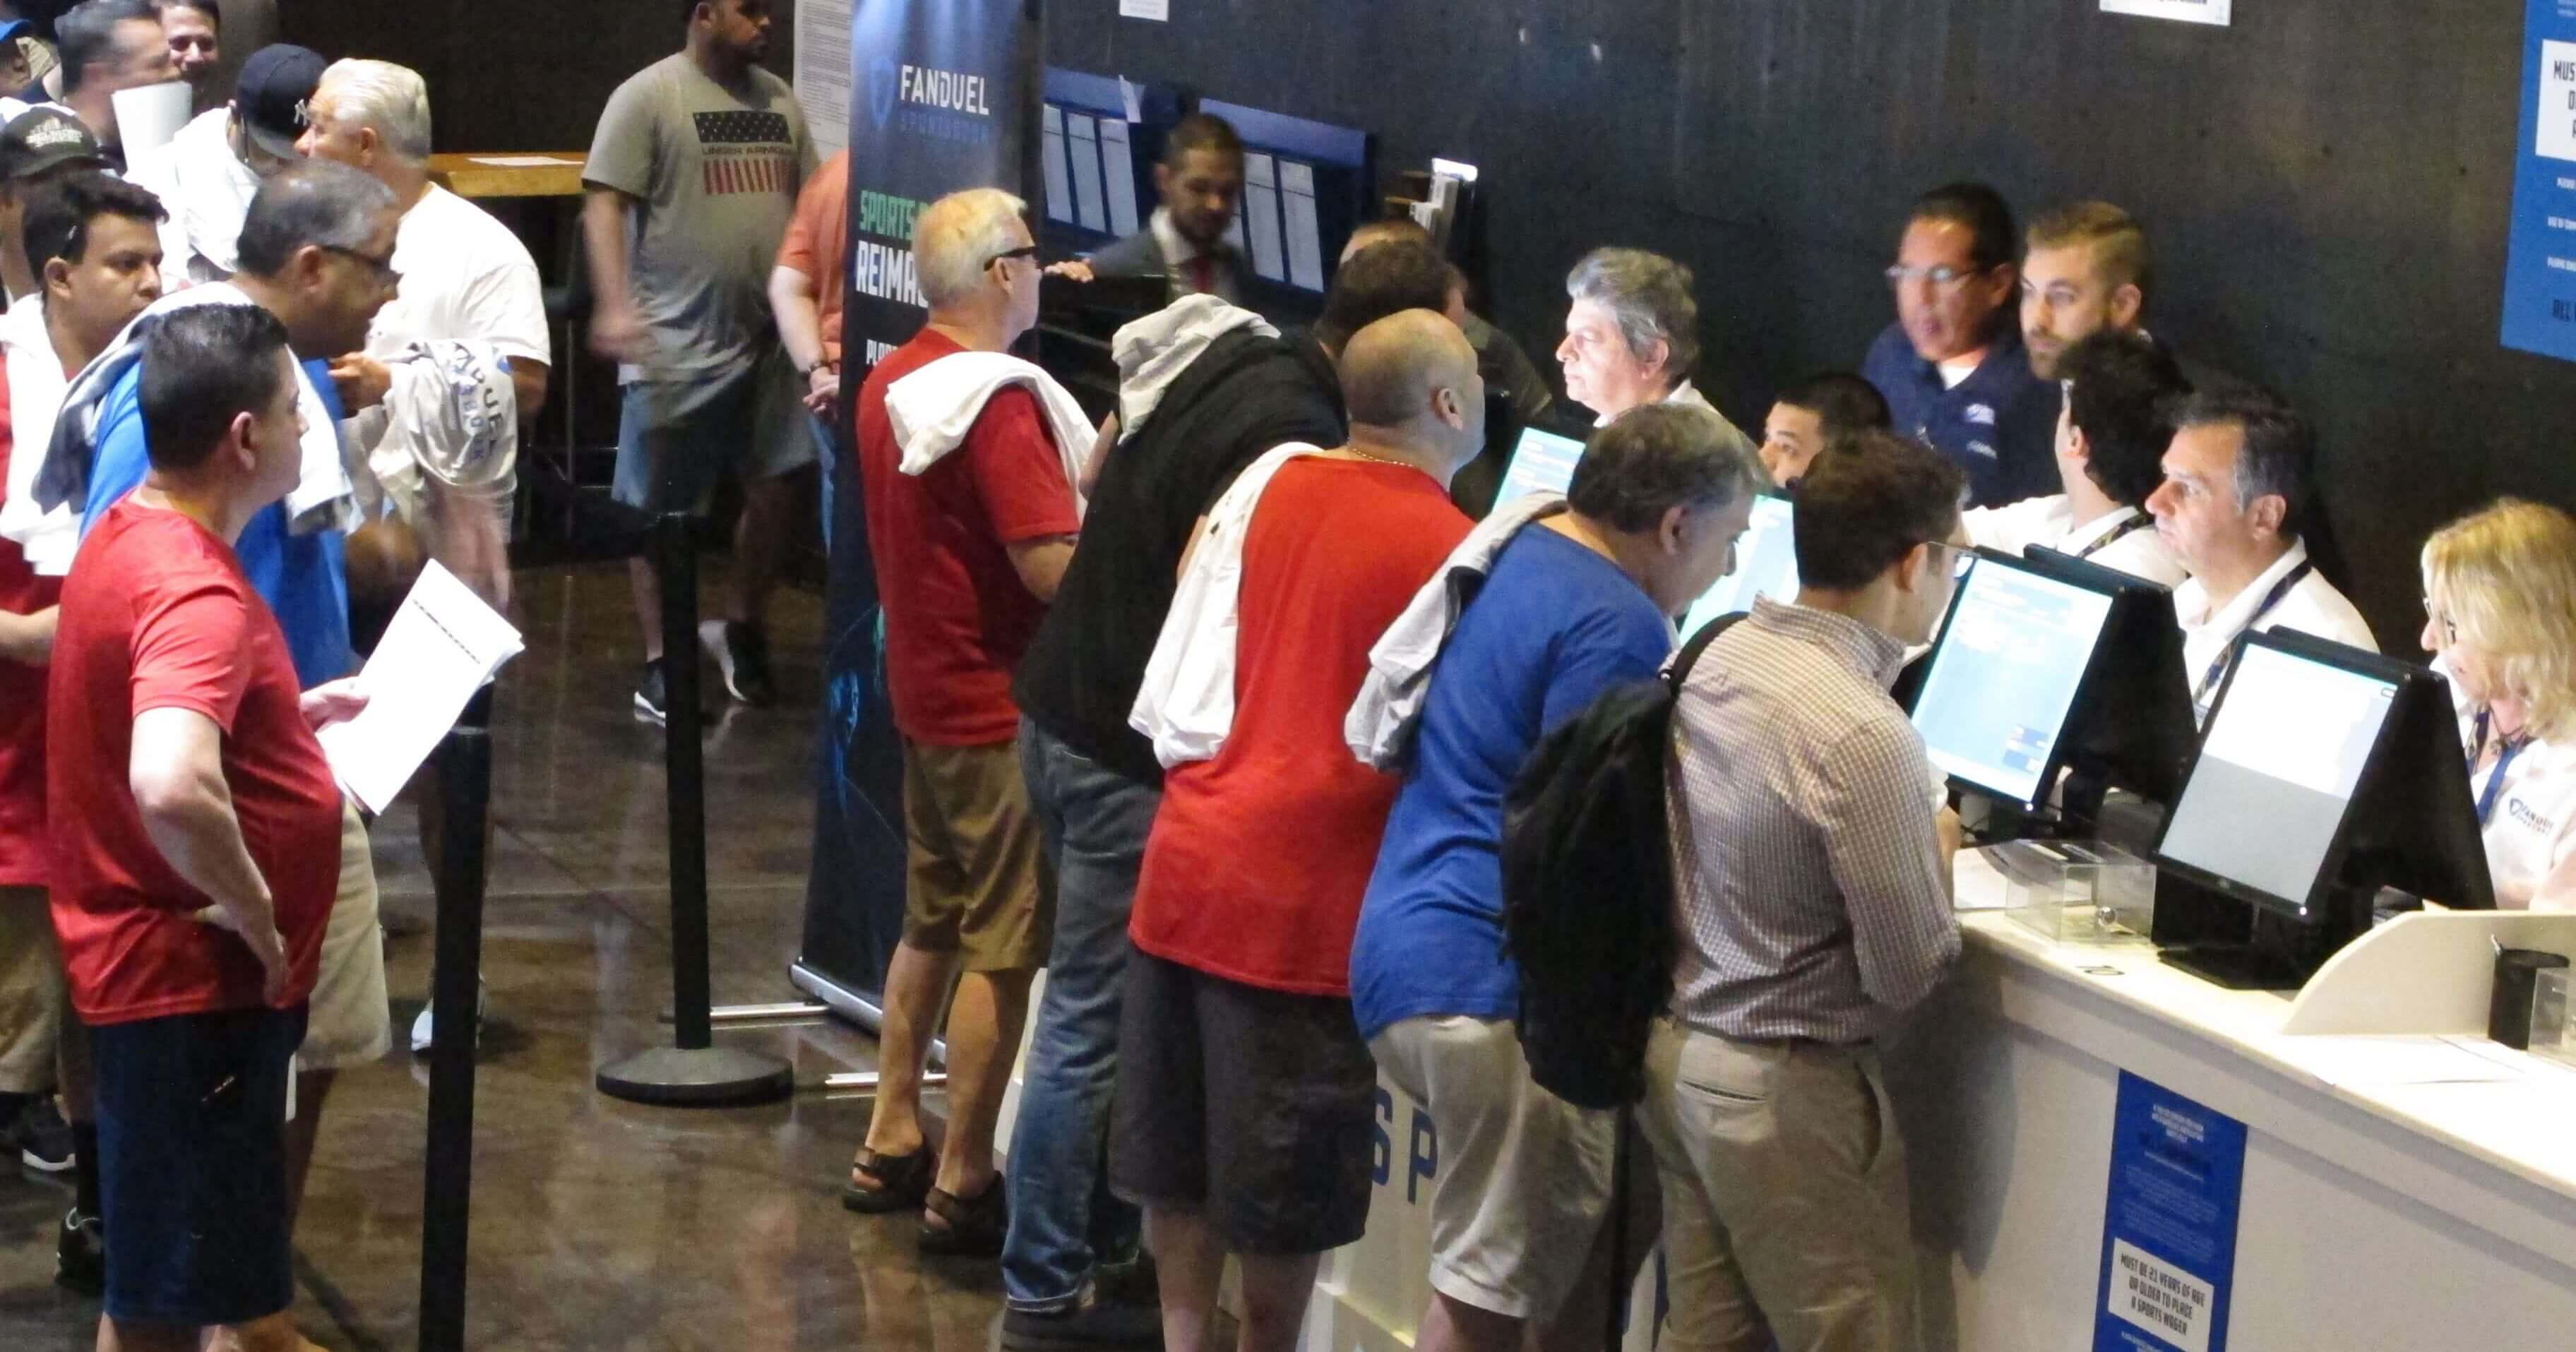 Gamblers place bets on sports events at the FanDuel sports book at the Meadowlands Racetrack in East Rutherford, New Jersey, on July 14.